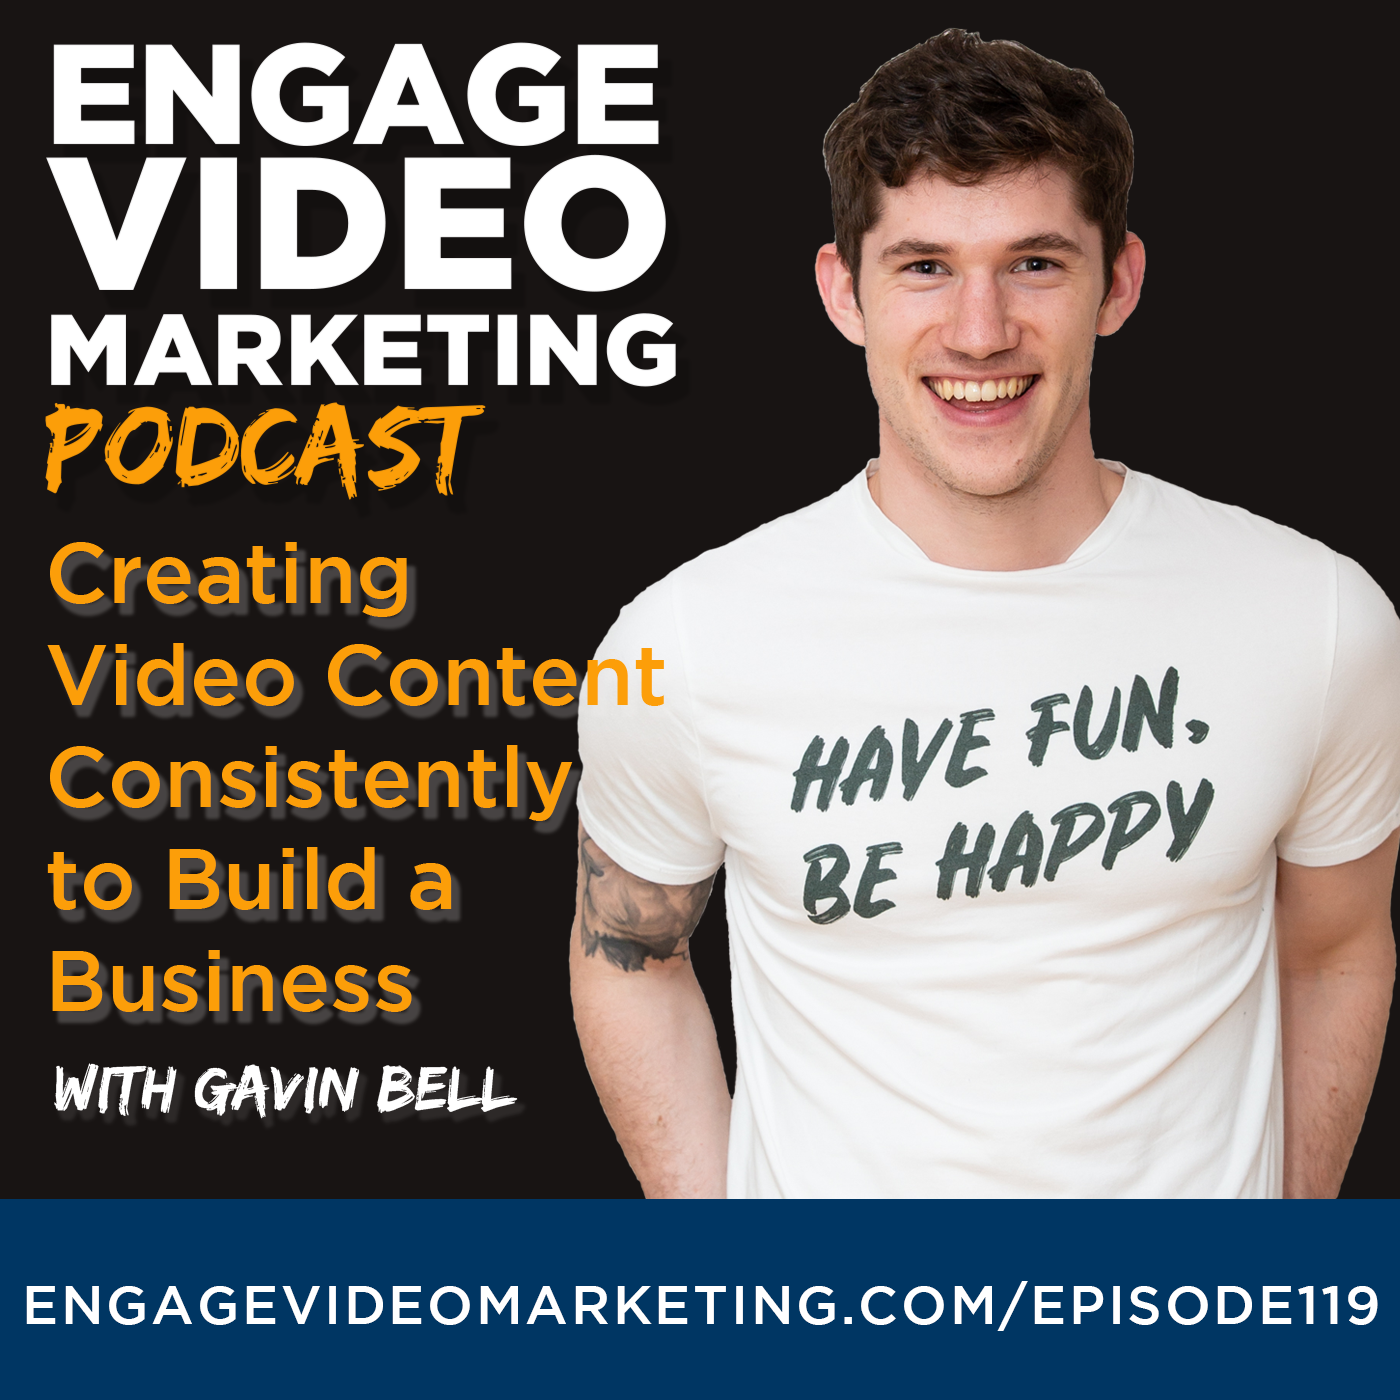 Creating Video Content Consistently to Build a Business with Gavin Bell